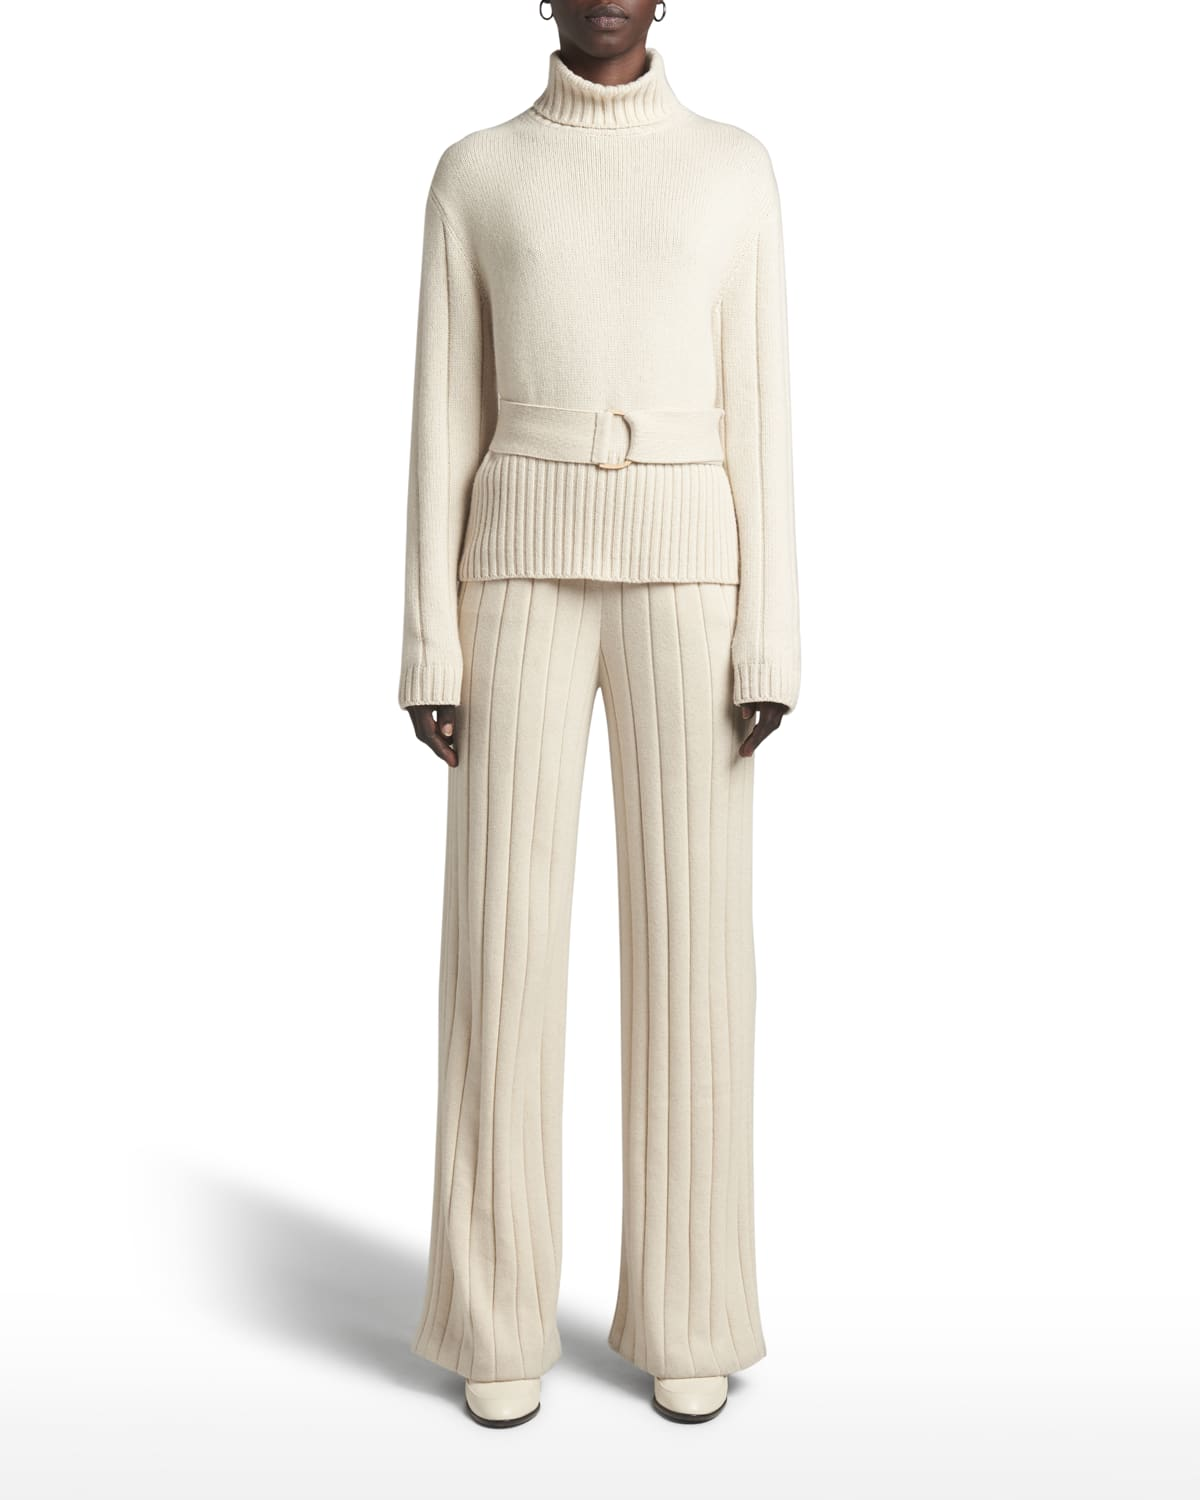 Dolcevita Duca Doastals Belted Wide-Rib Sweater